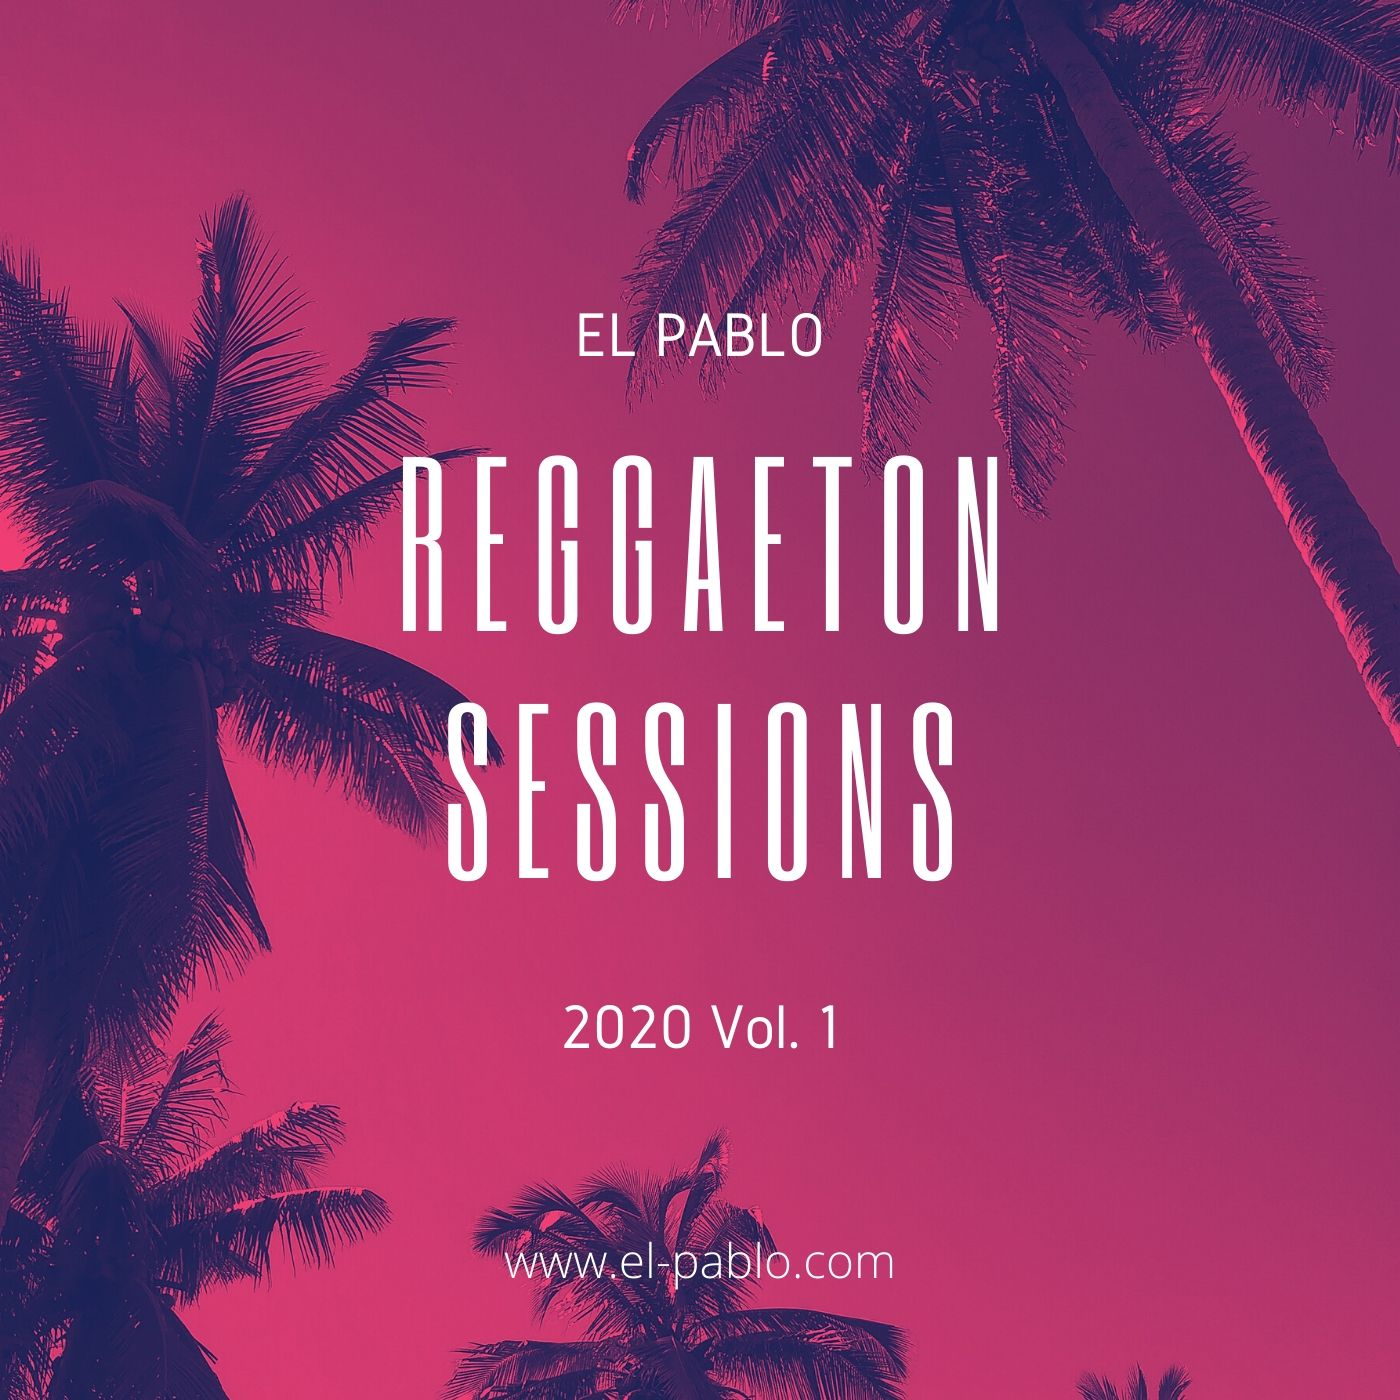 CD cover Reggaeton Sessions 2020 Vol. 1